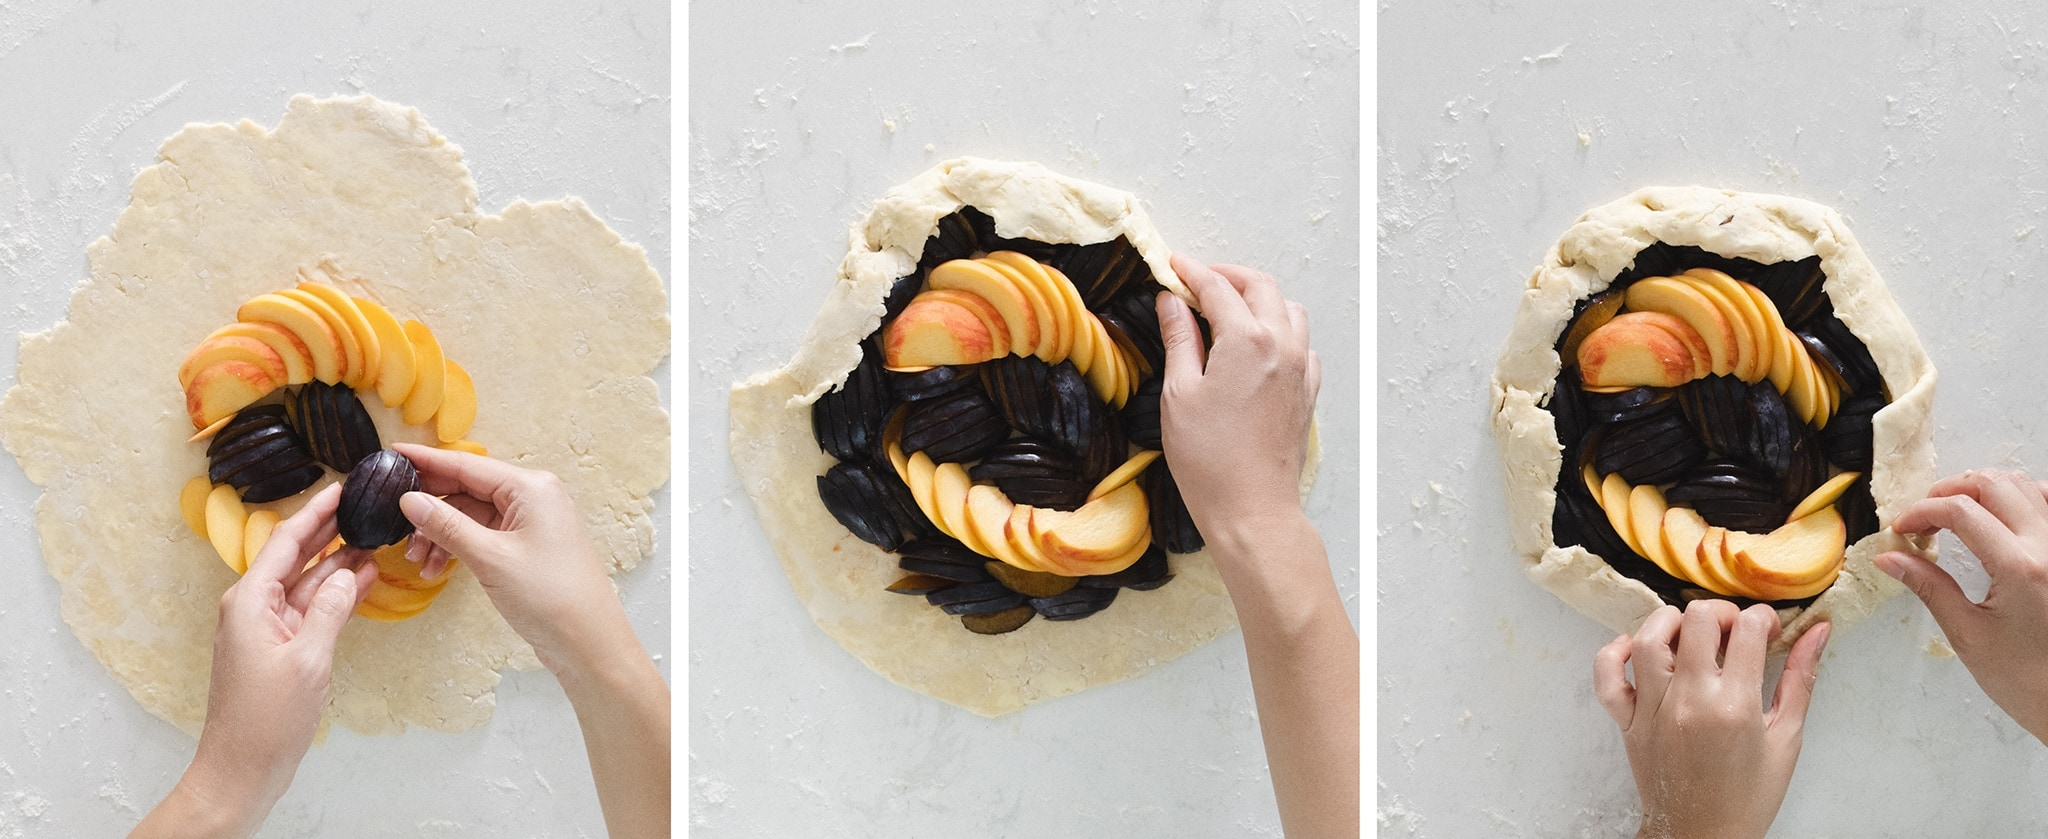 Arranging fruit in the middle of galette dough